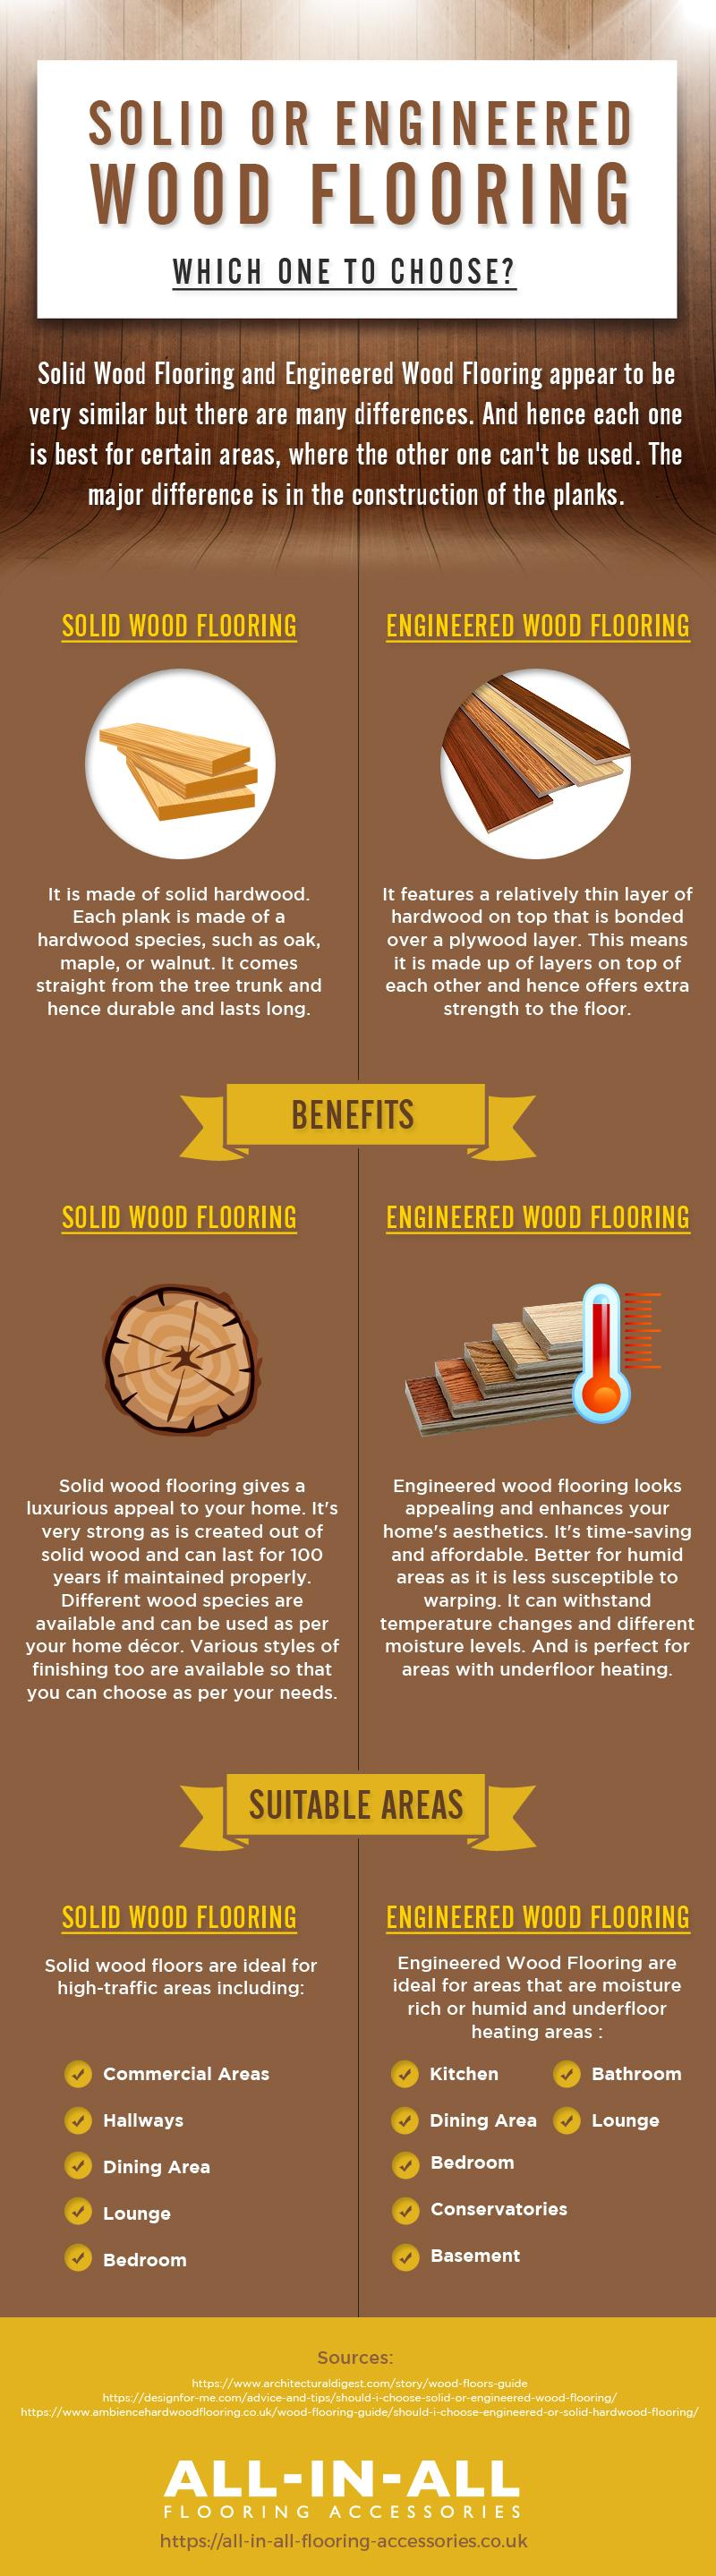 Solid or Engineered Wood Flooring - Which One to Choose?